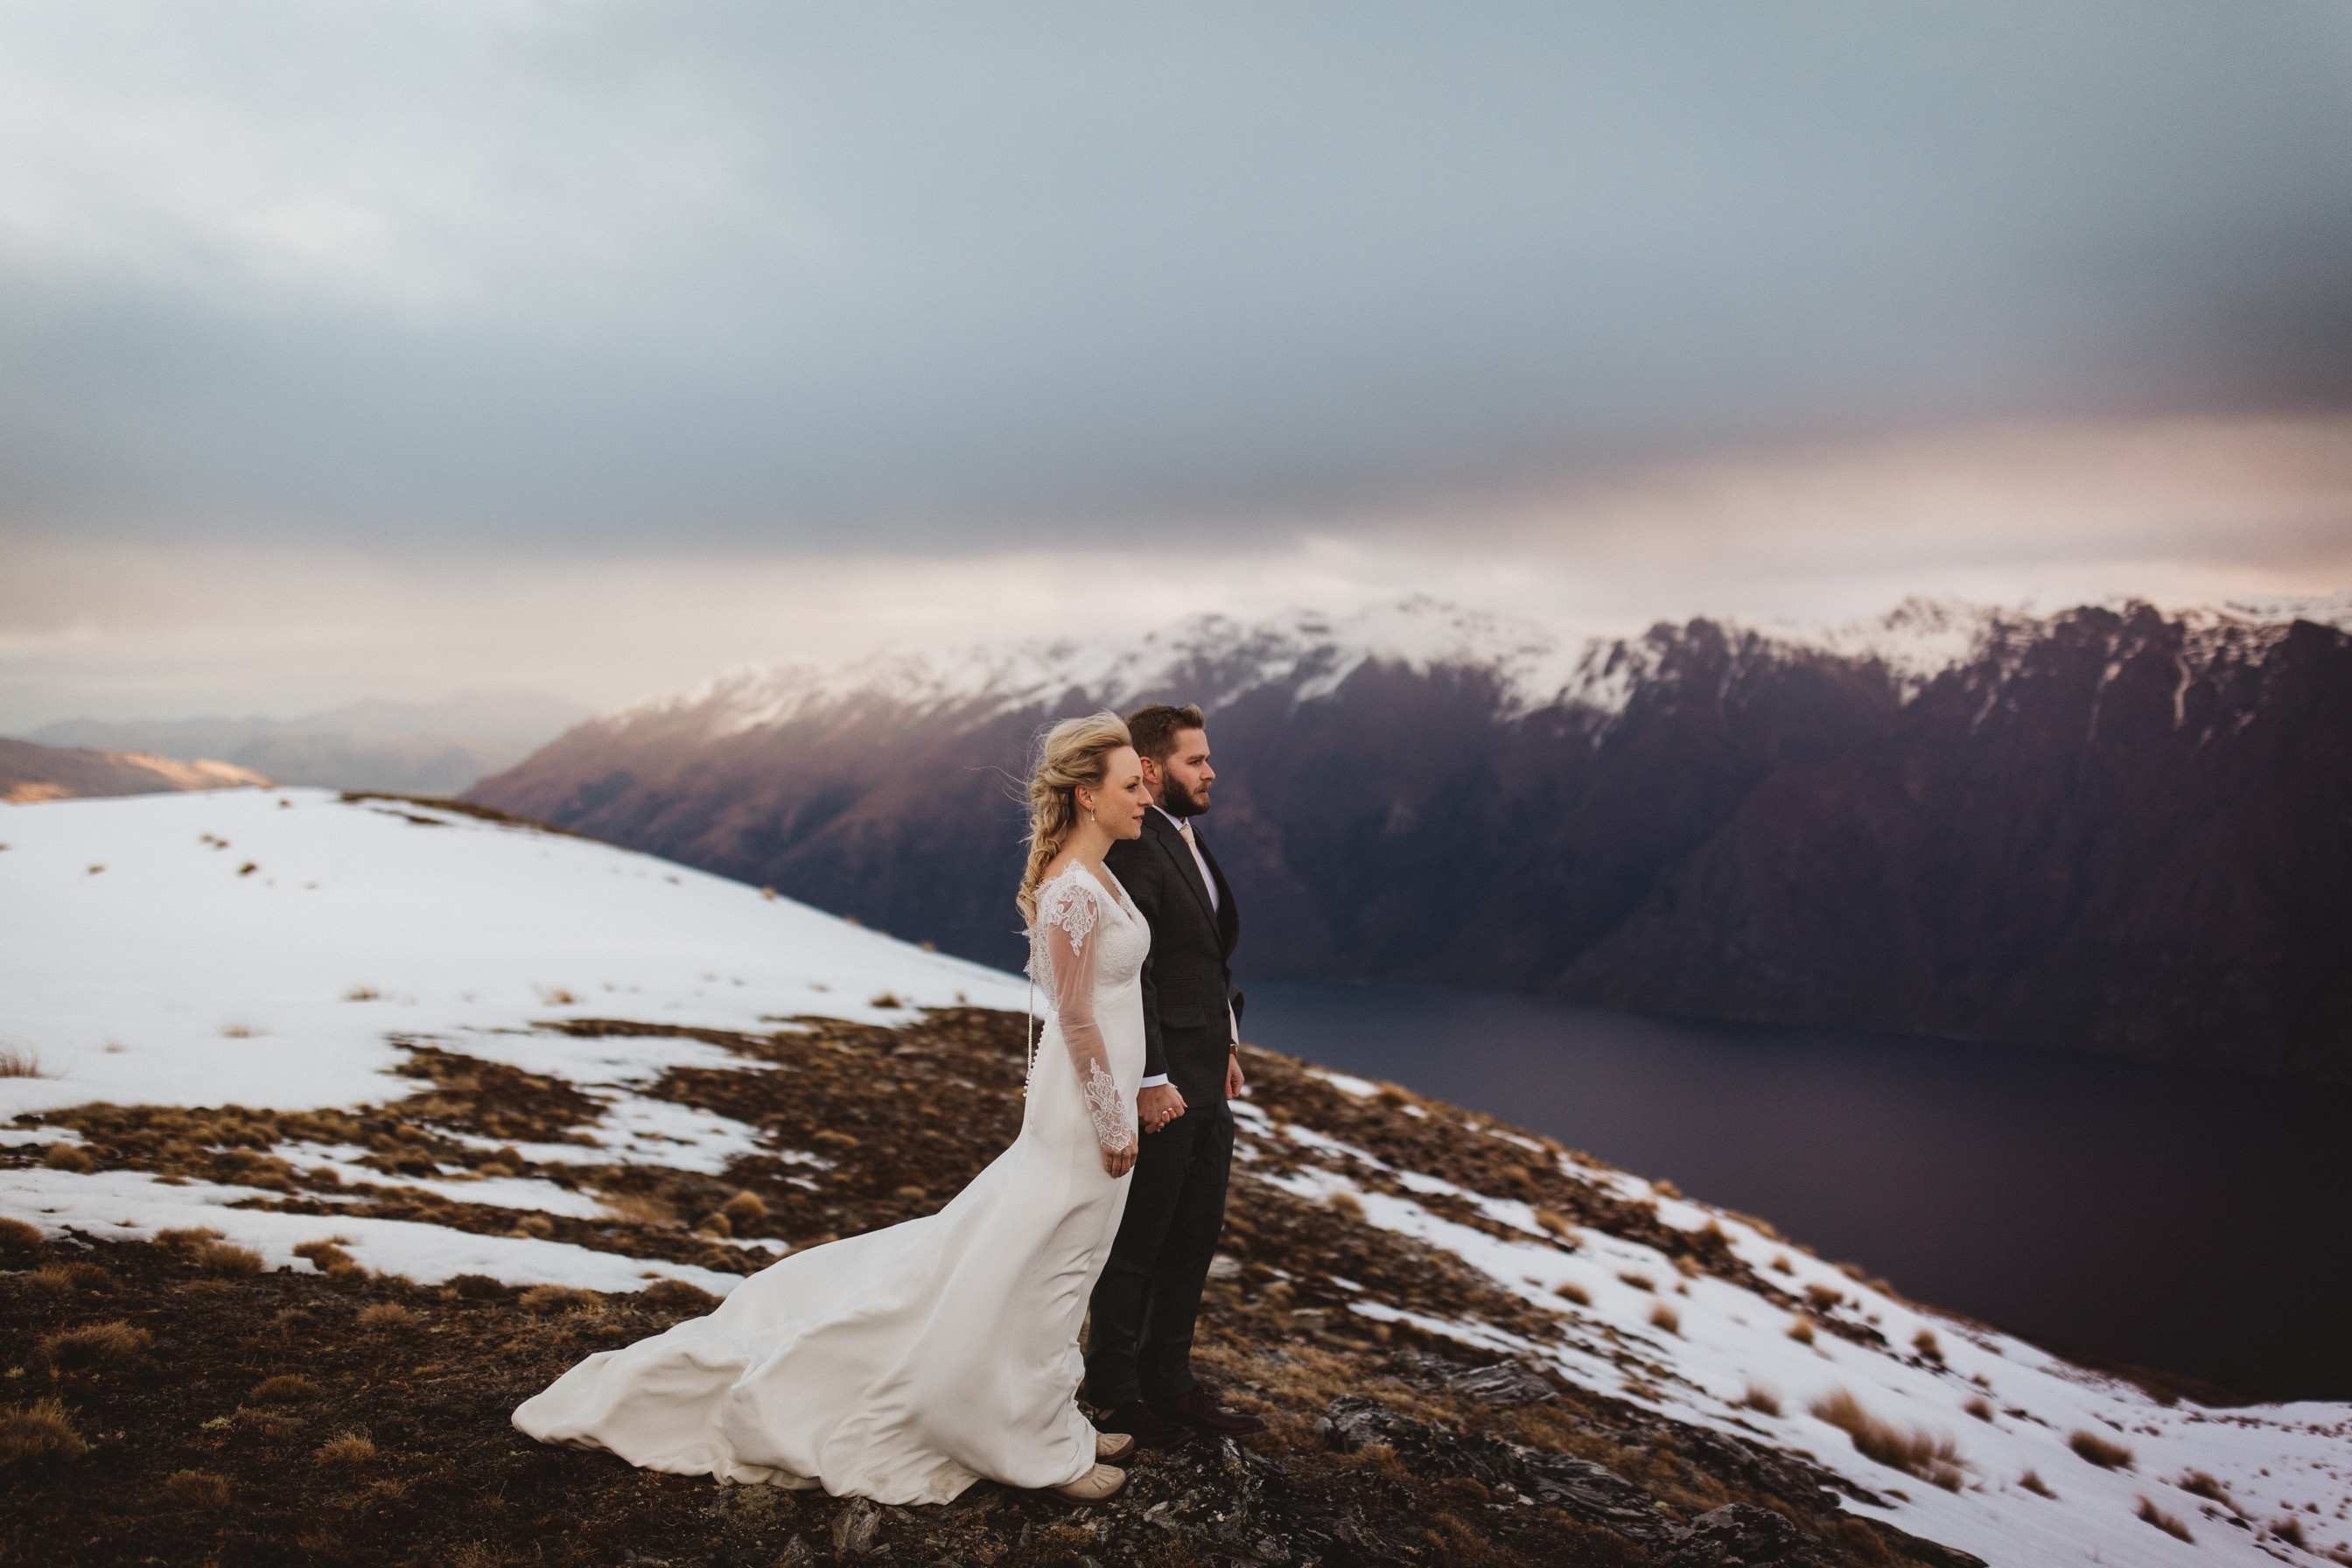 Heli wedding in Queenstown in winter